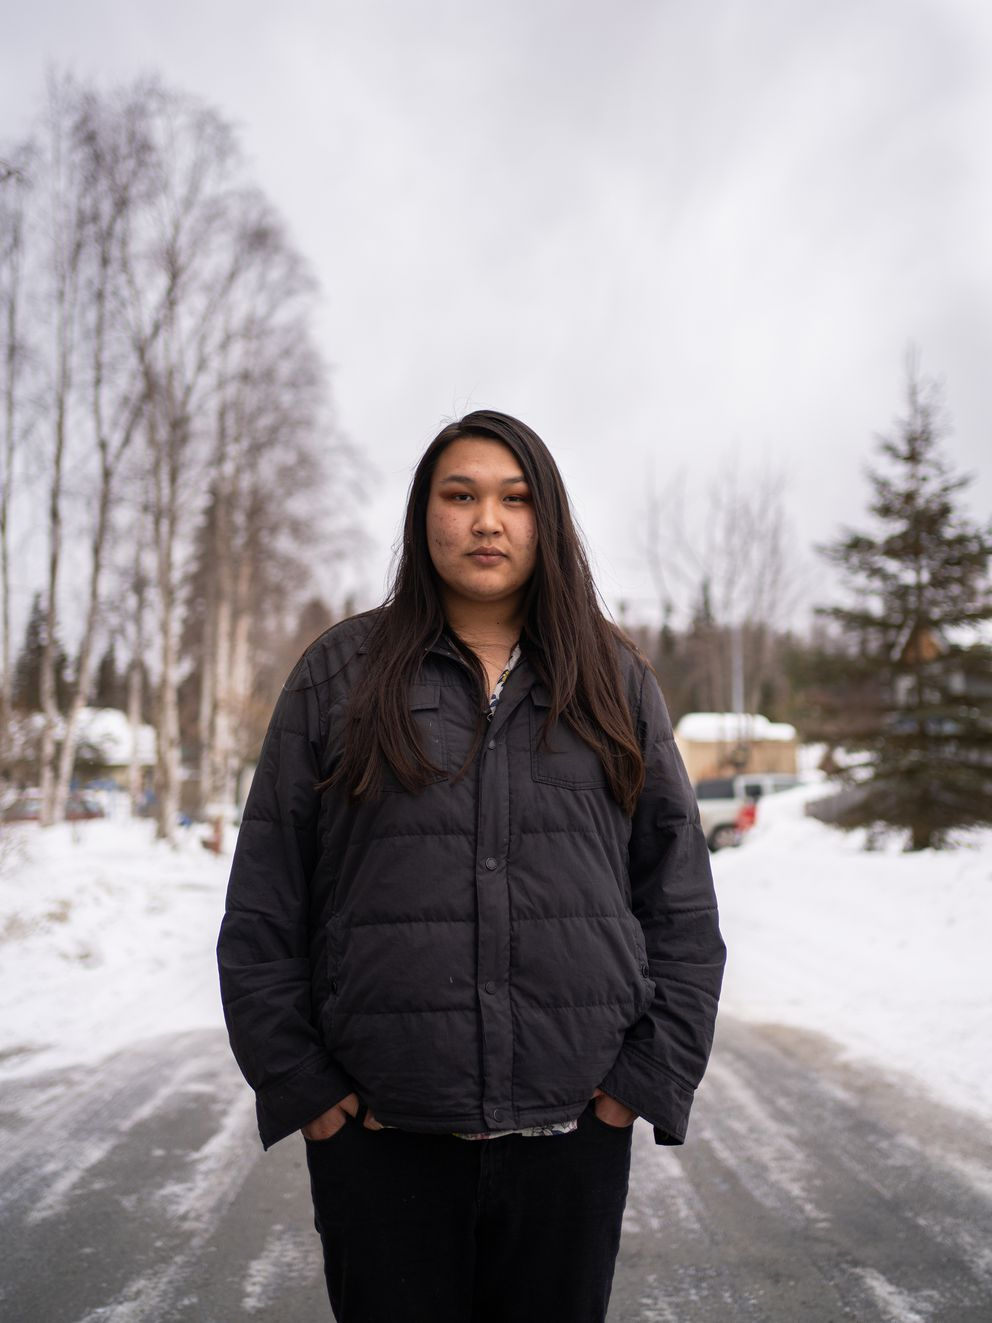 Alex Carter, 21, outside her home in Anchorage on April 8. (Ash Adams for The Marshall Project and NPR)